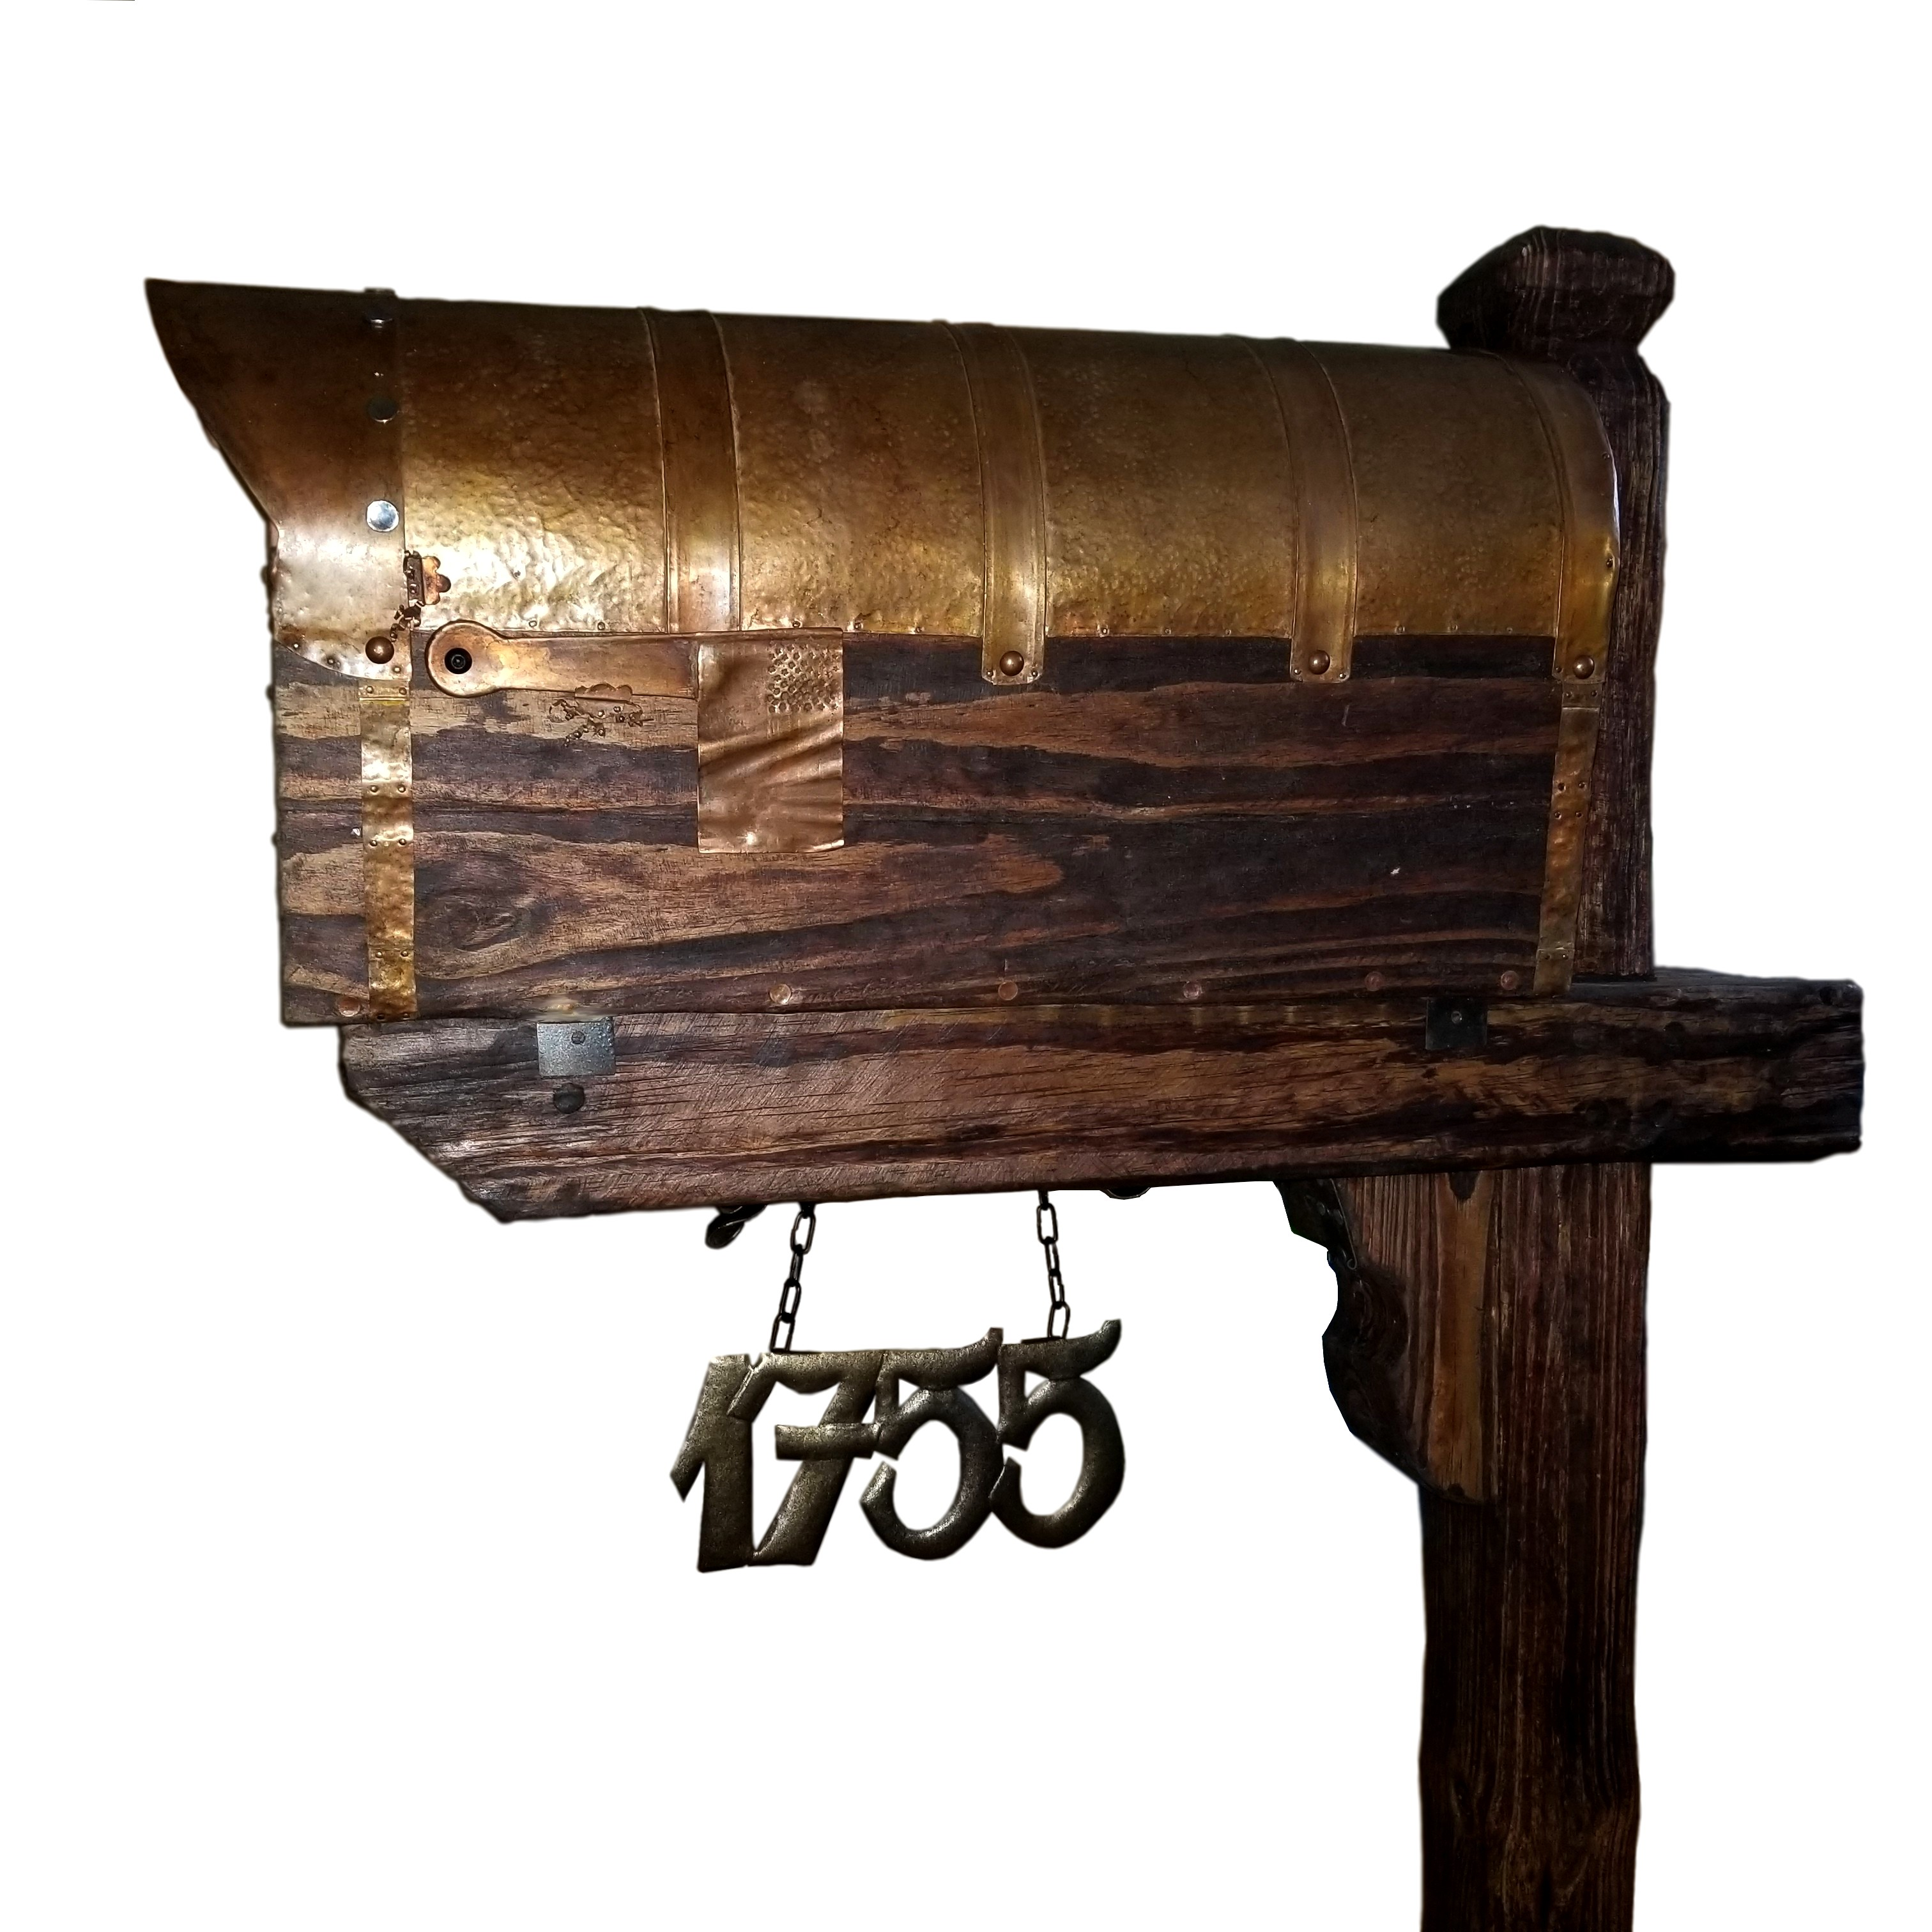 Rustic Mailbox With The Copper Roof and American Flag